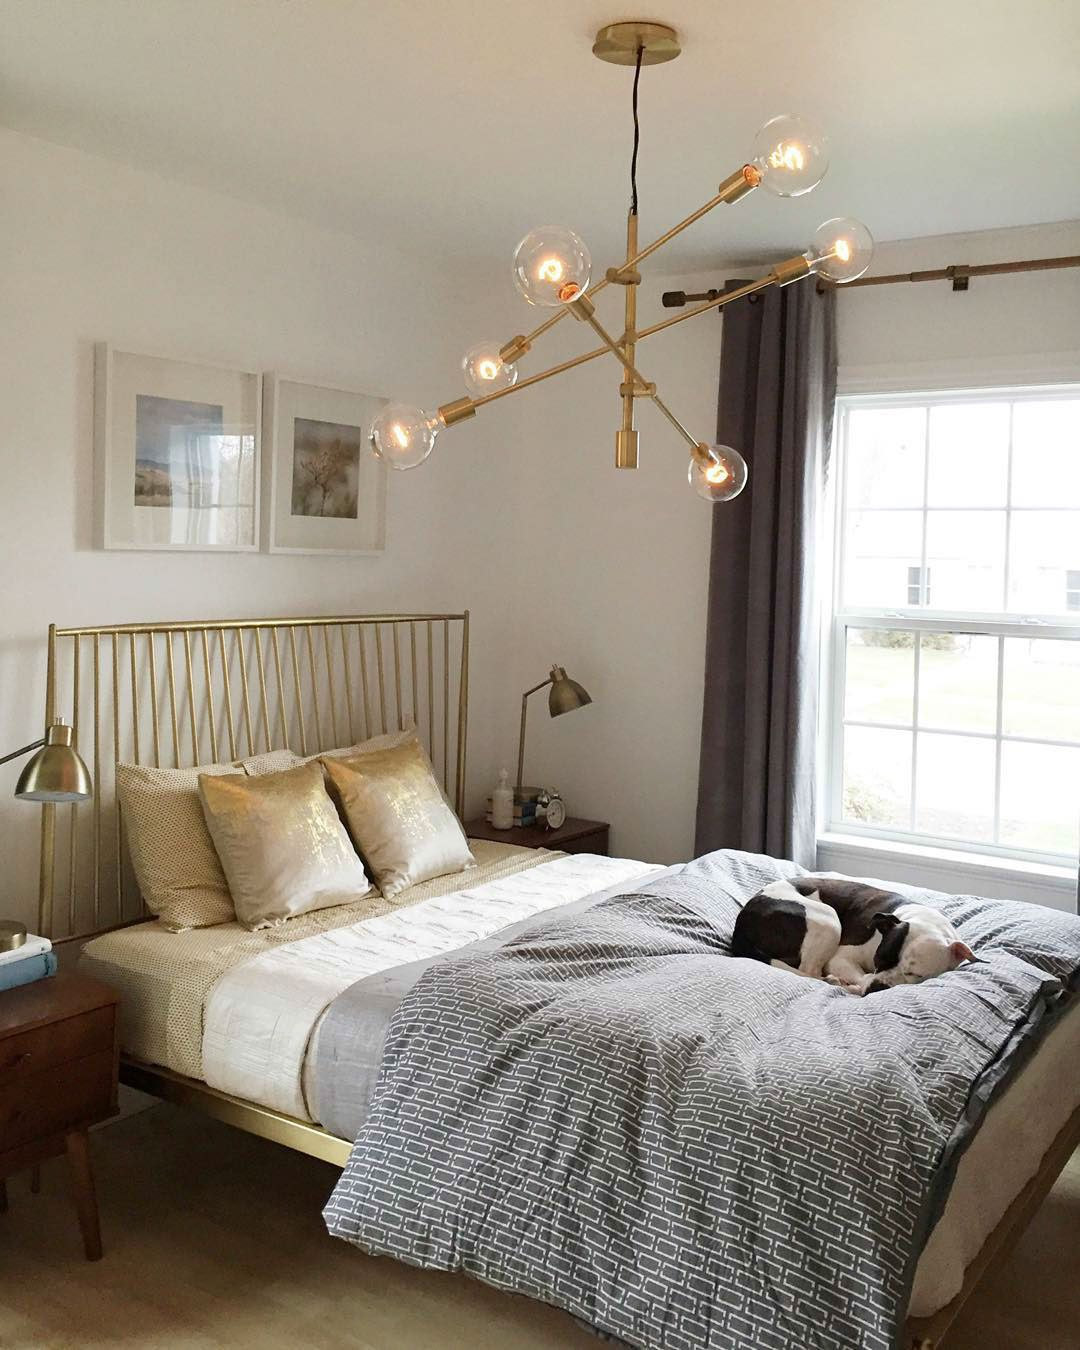 Small Apartment Bedroom West Elm Bedroom Ideas Bedroom Design Houzz Lighting Ideas For Bedroom: Create A Cozy + Stylish Home With West Elm Bedding